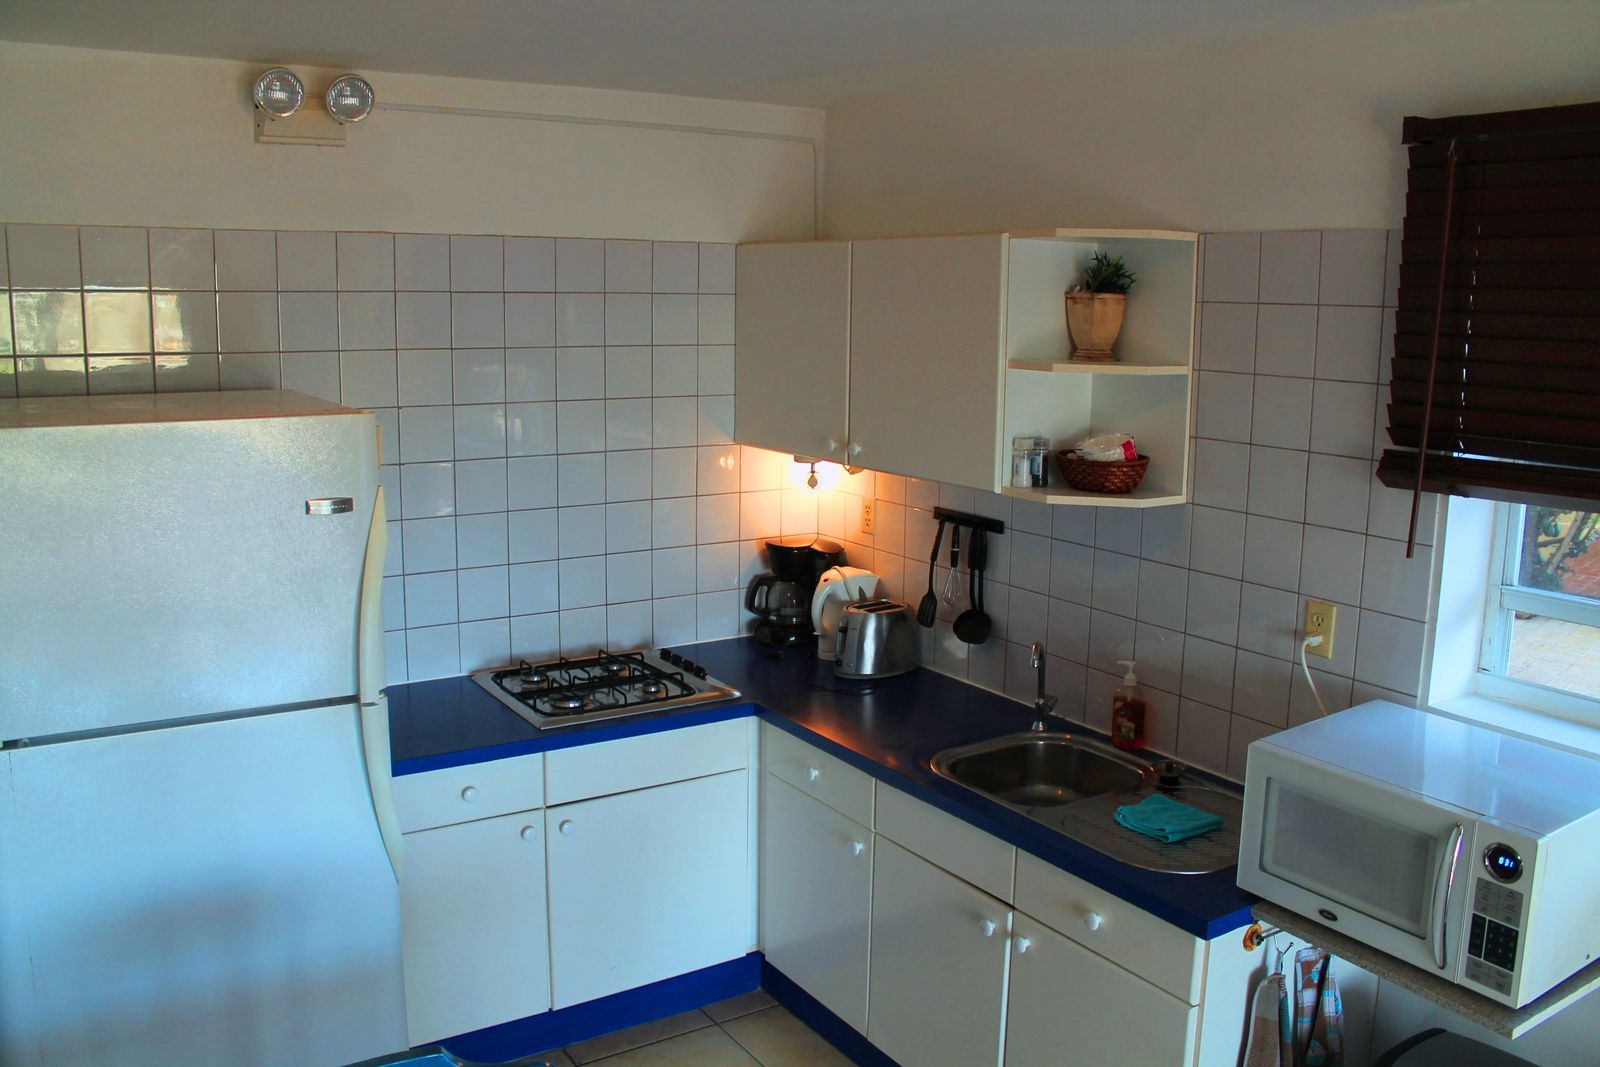 Image of 4 Bedroom Apartment - At Sea - Ground Floor